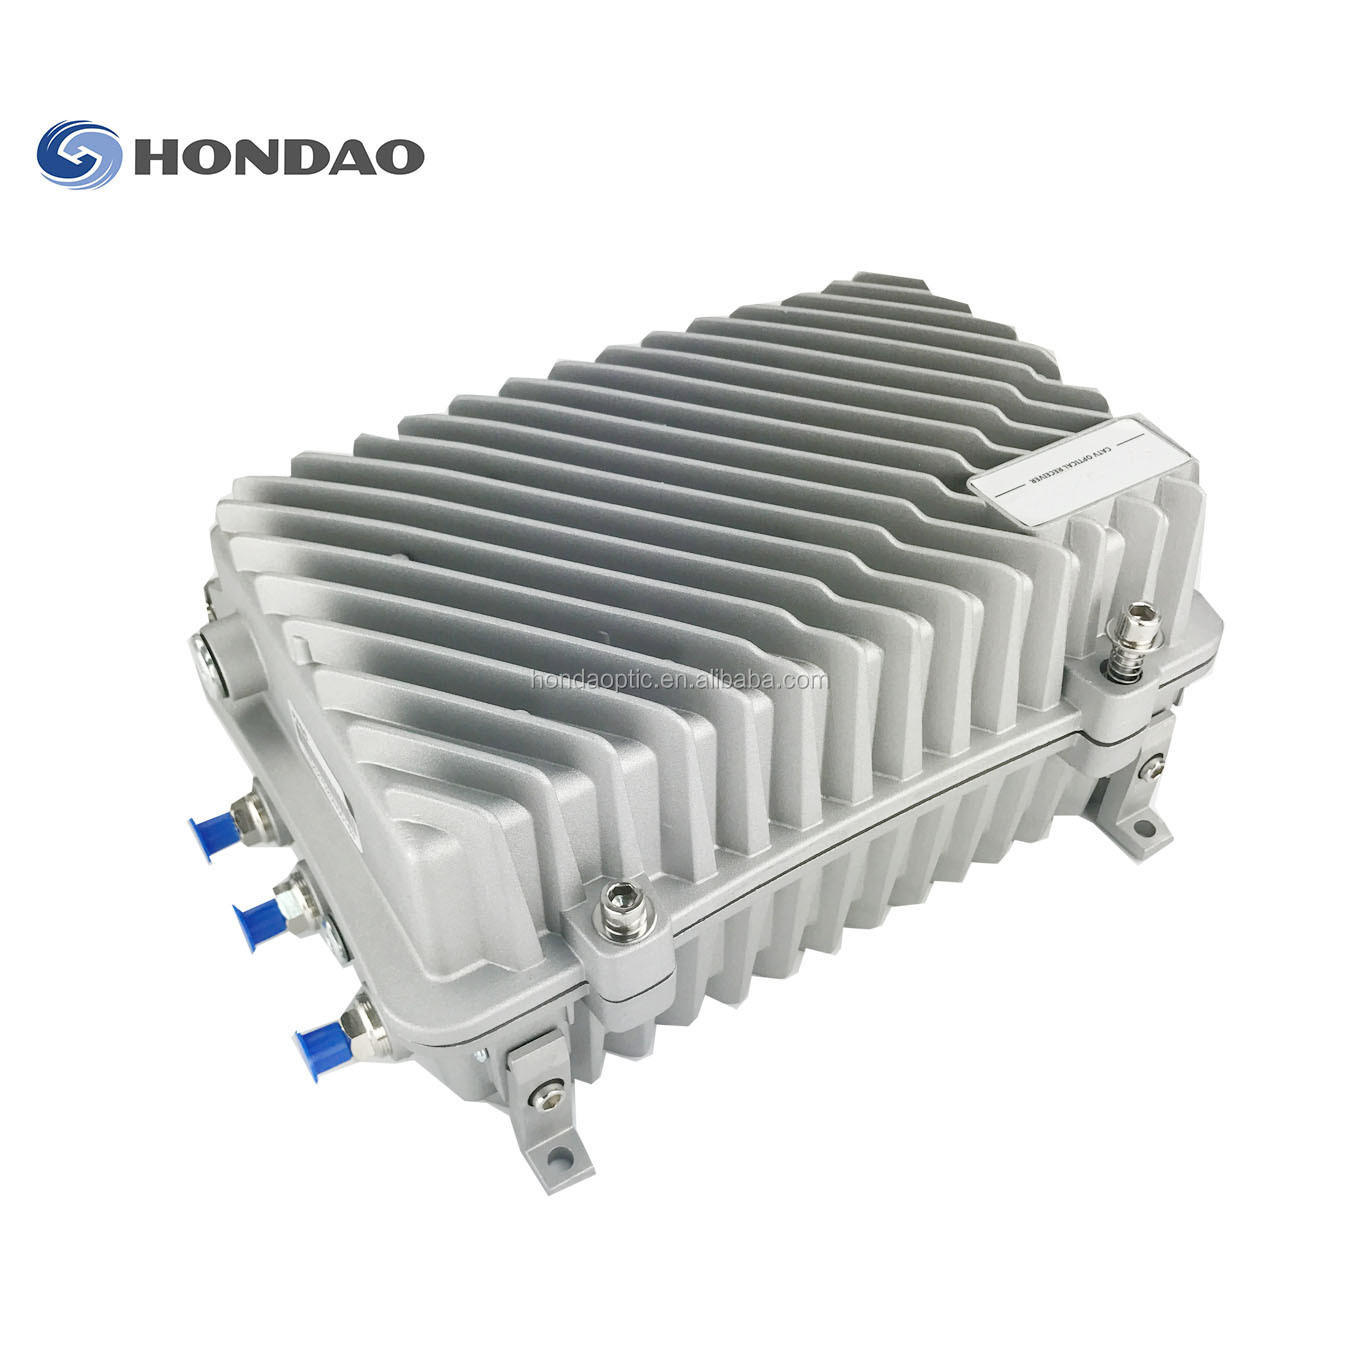 Hondao HD8604JL Multi Tugas Outdoor Node 3 In 1 DOCSIS 3.0 Mini Cmts Cmts HFC Optik Node dengan Reverse jalan